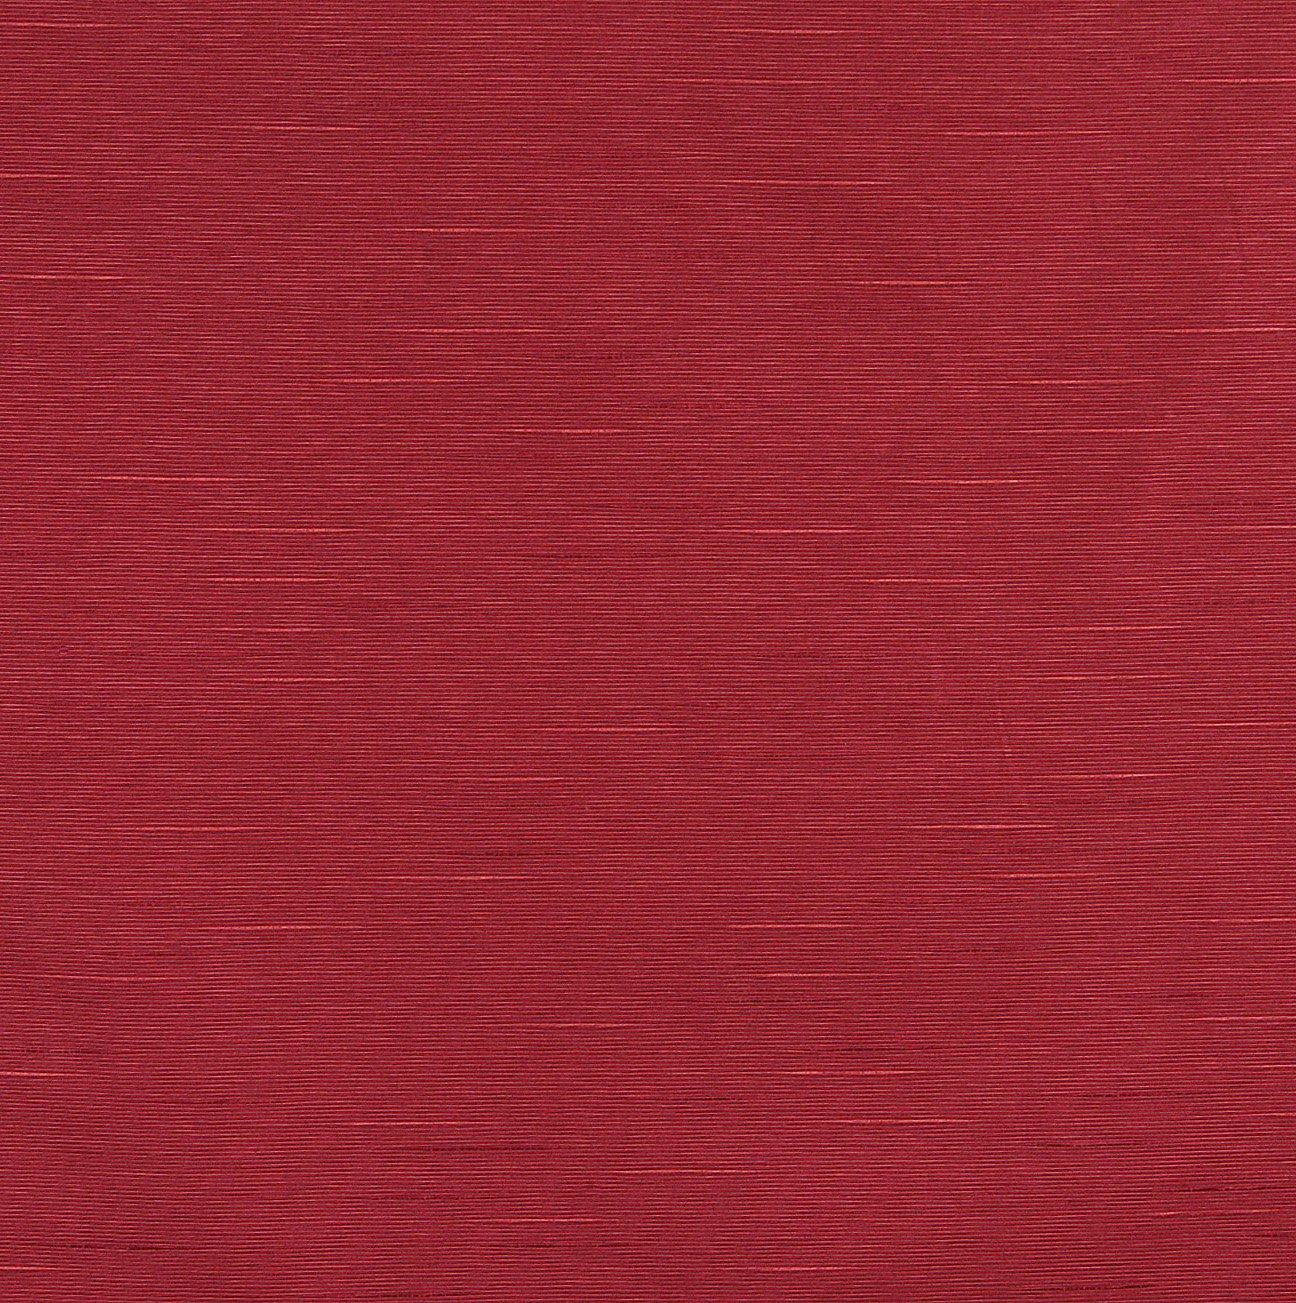 C157 Tomato Red Textured Solid Jacquard Linen Look